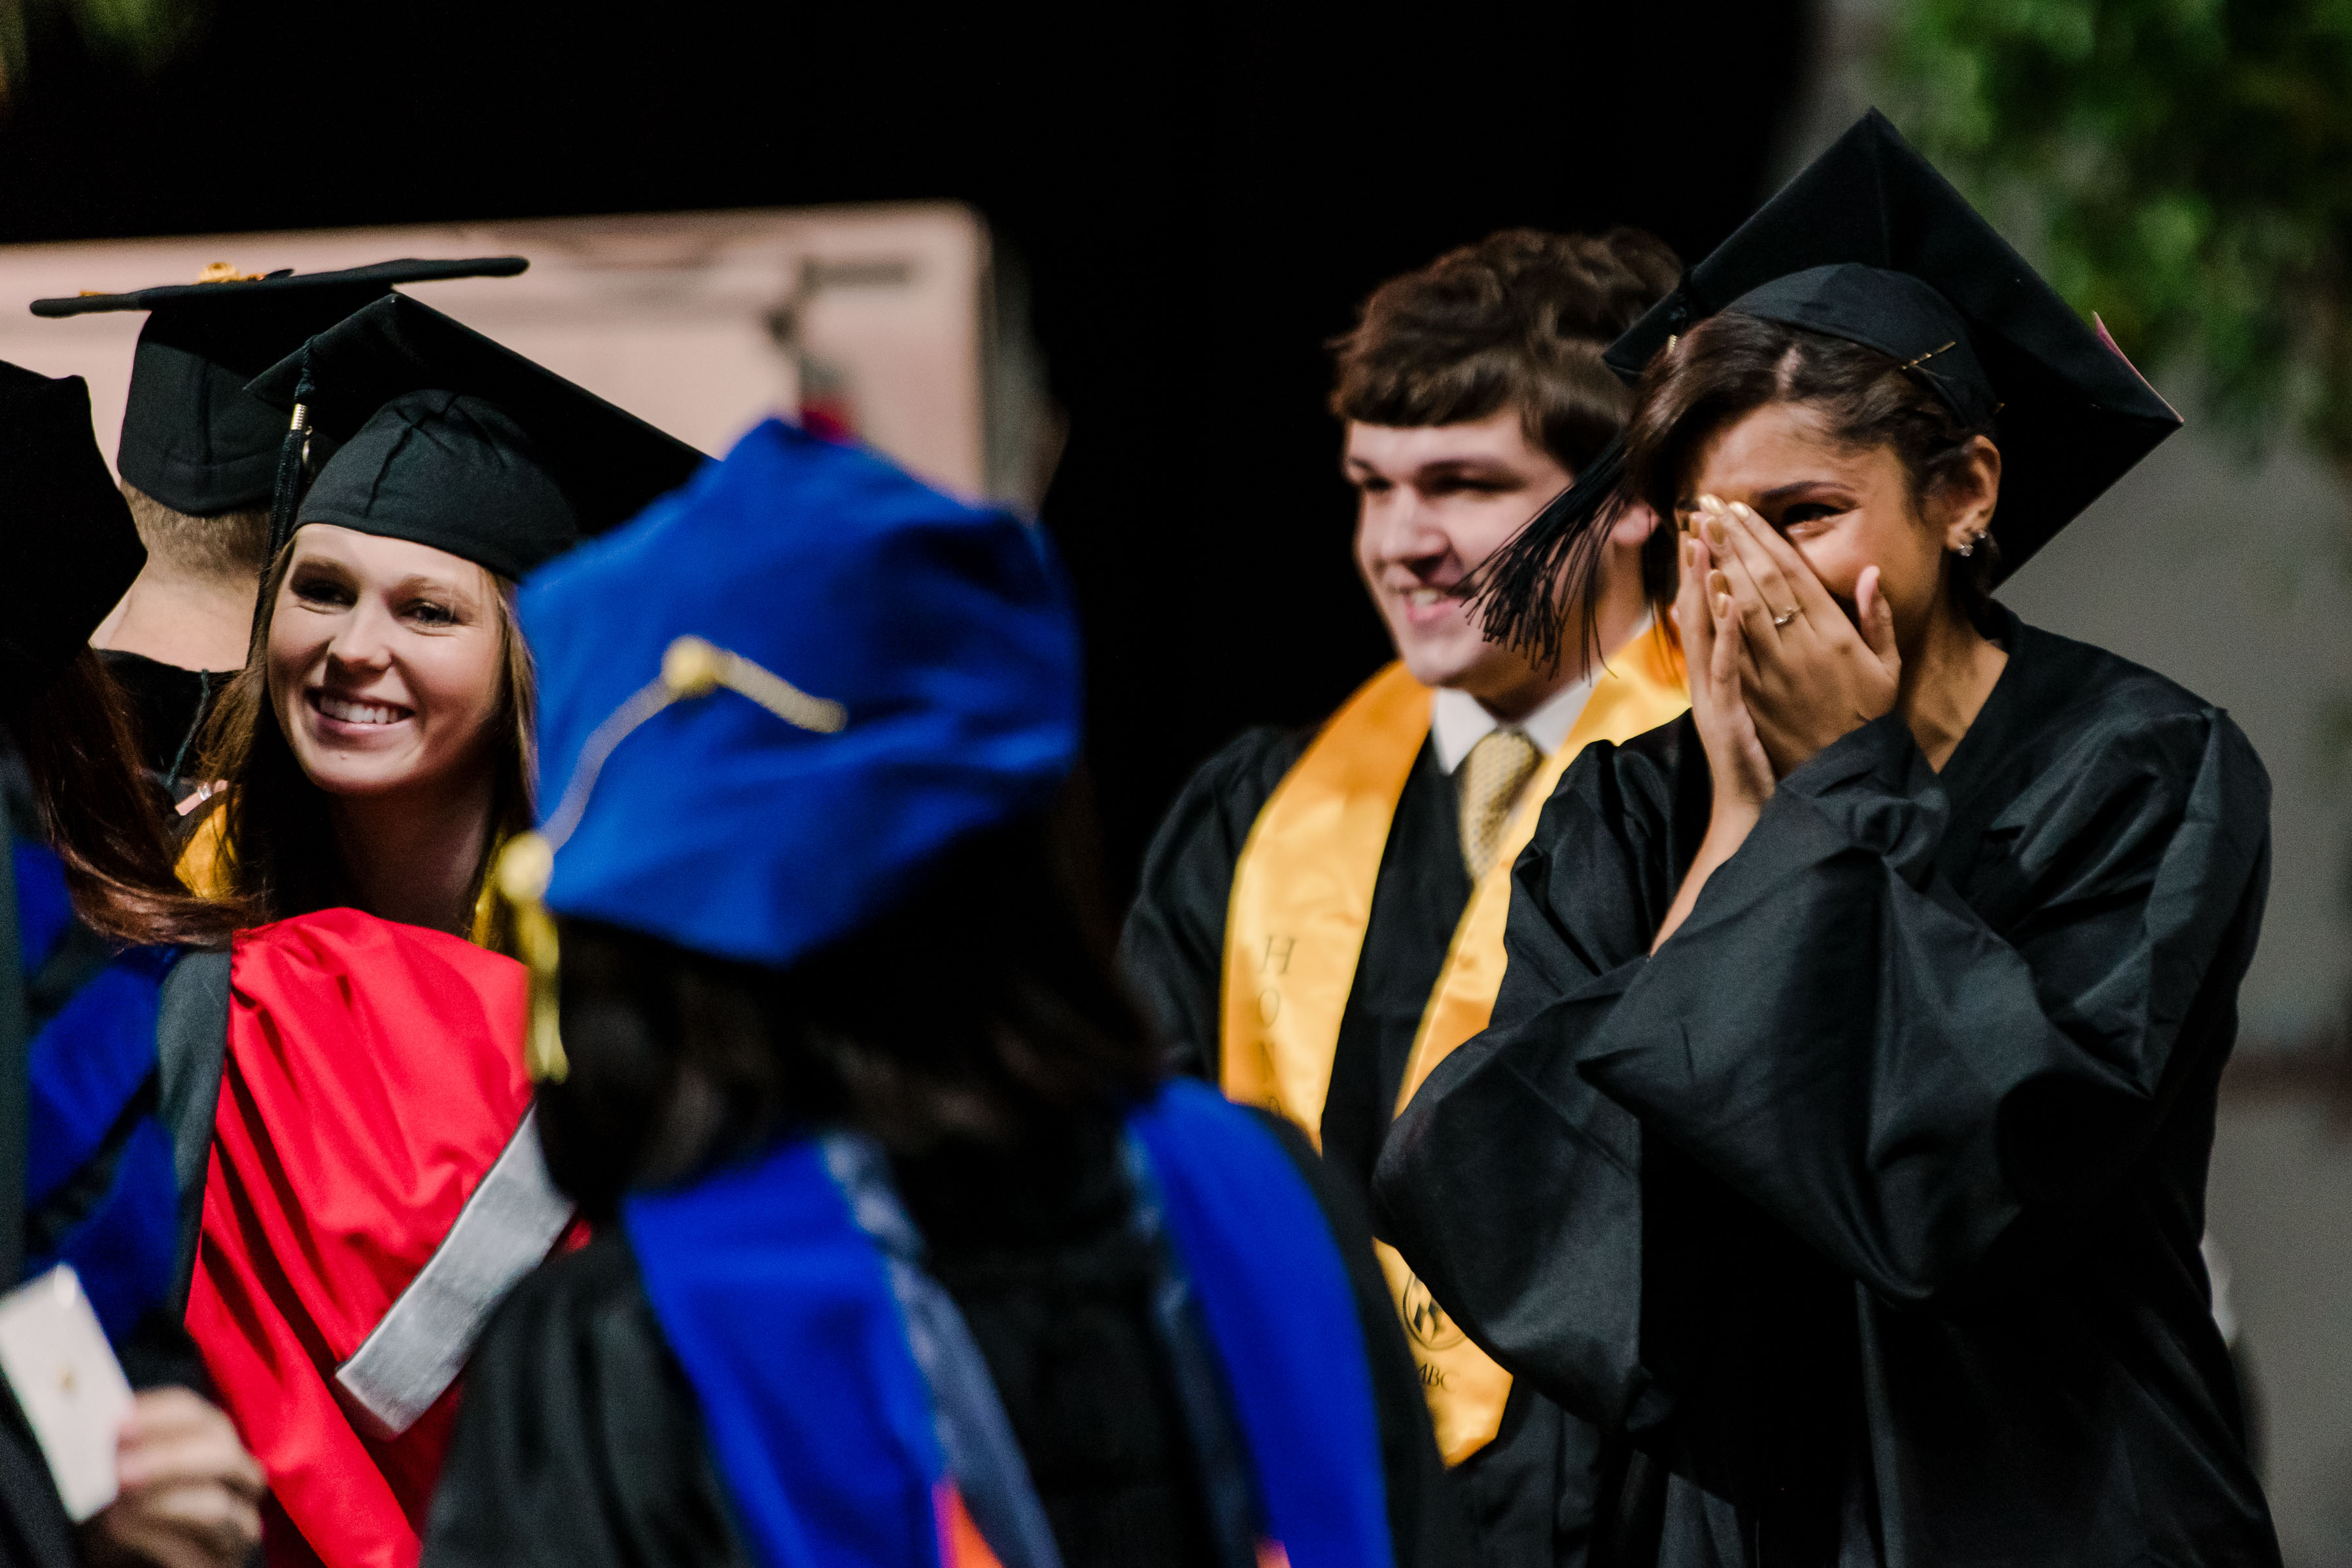 girl surrounded by others in graduation garbs happily covers face